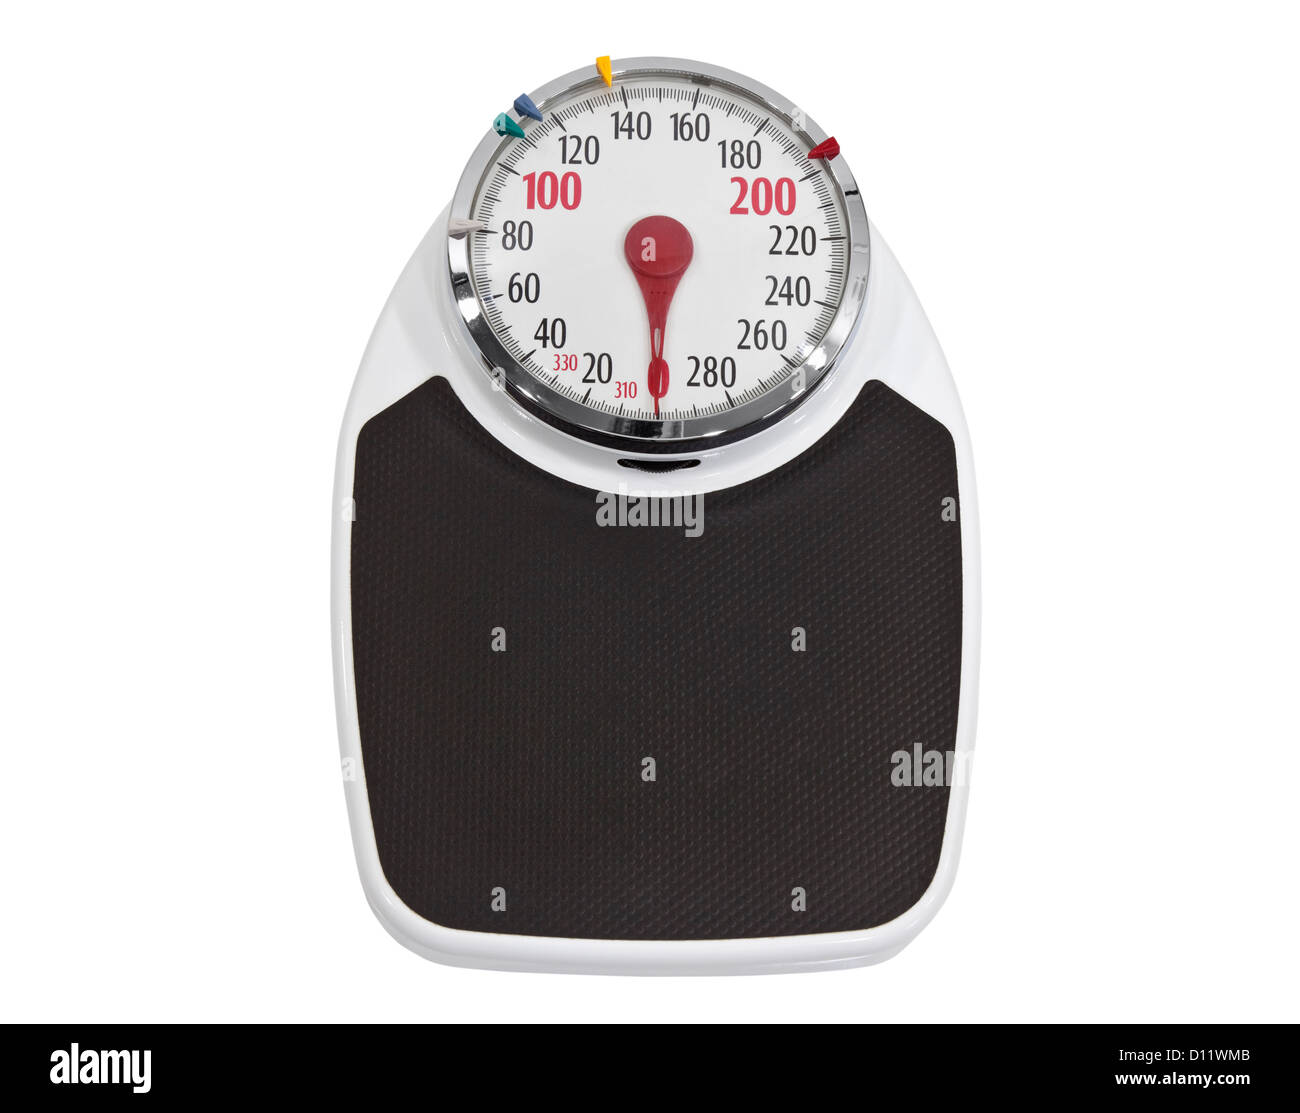 Old home weight scale isolated with clipping path. - Stock Image